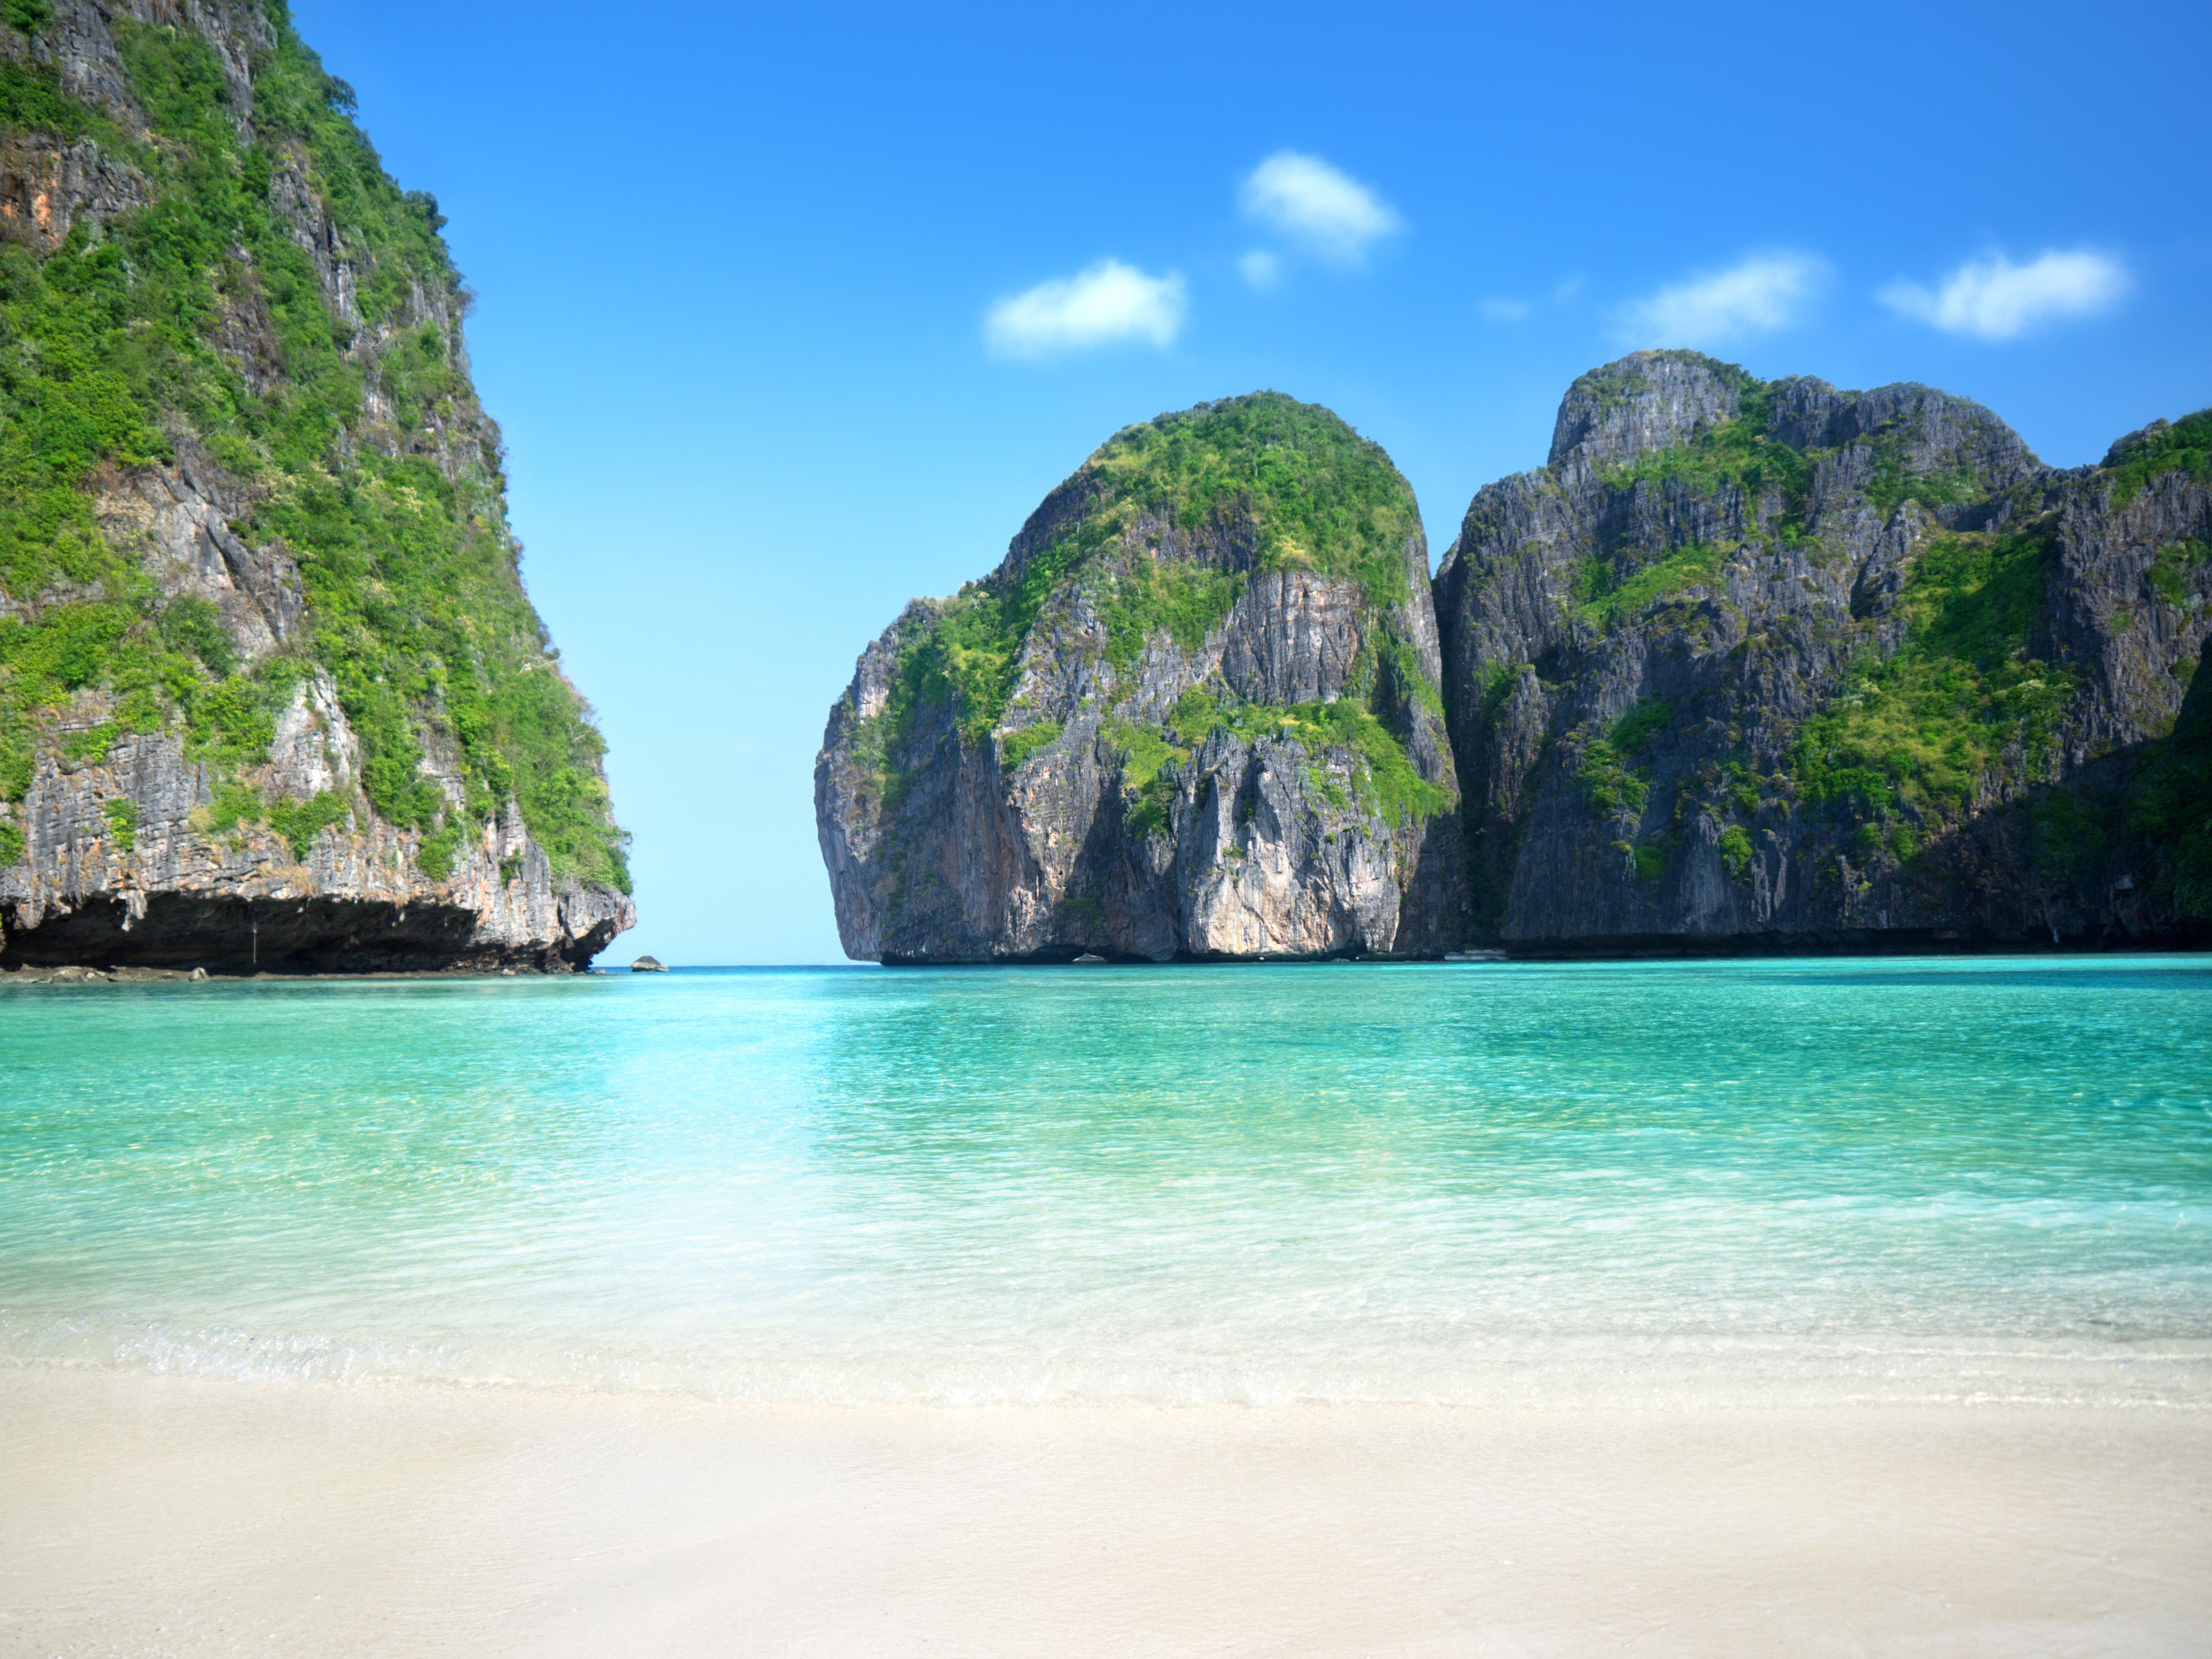 The Phi Phi Islands Math Wallpaper Golden Find Free HD for Desktop [pastnedes.tk]